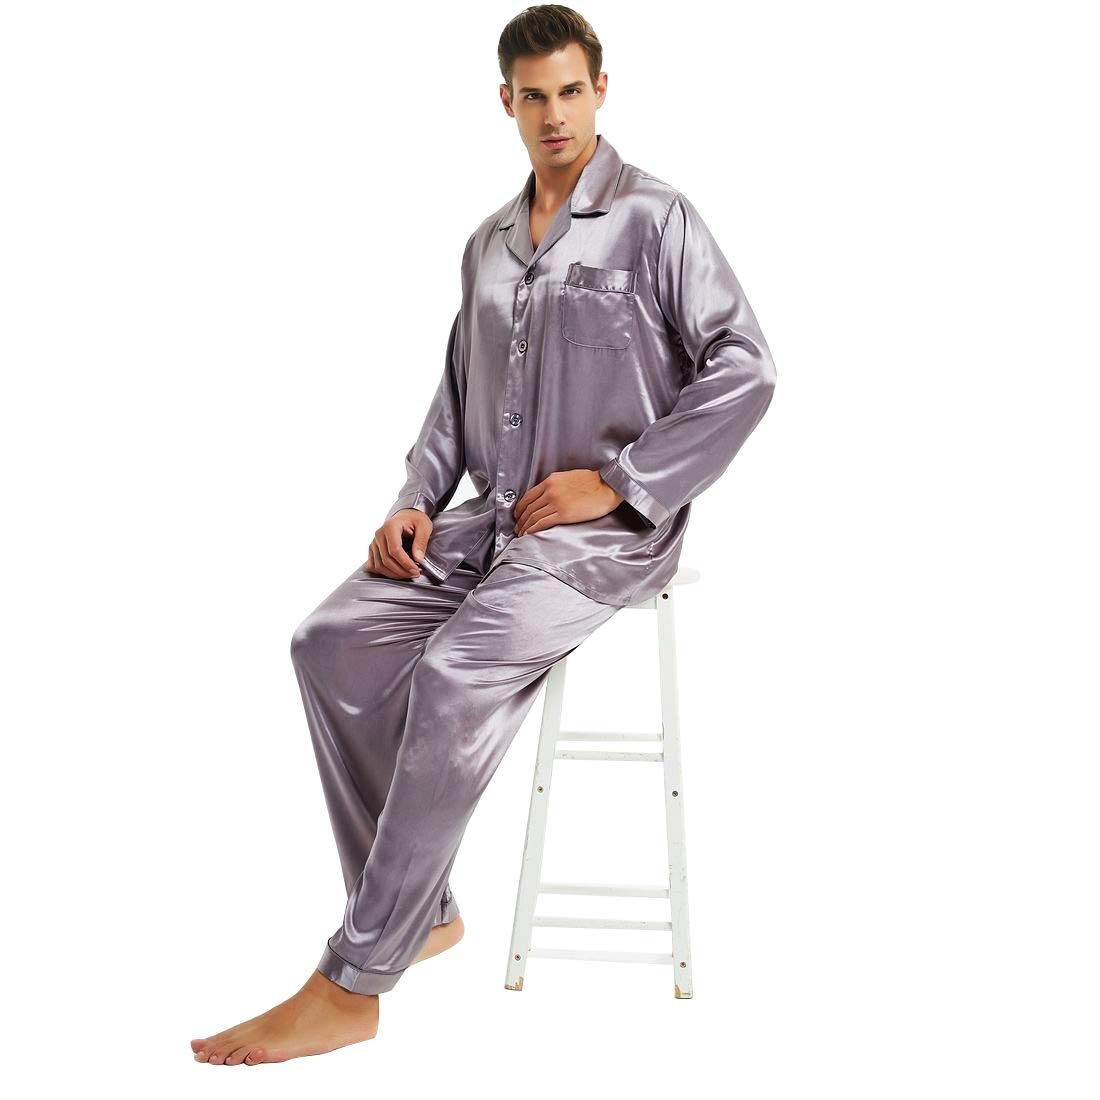 Mens Silk Satin Pajamas Set Sleepwear Loungewear S~4XL Plus_Gifts_7-12days to USA M713